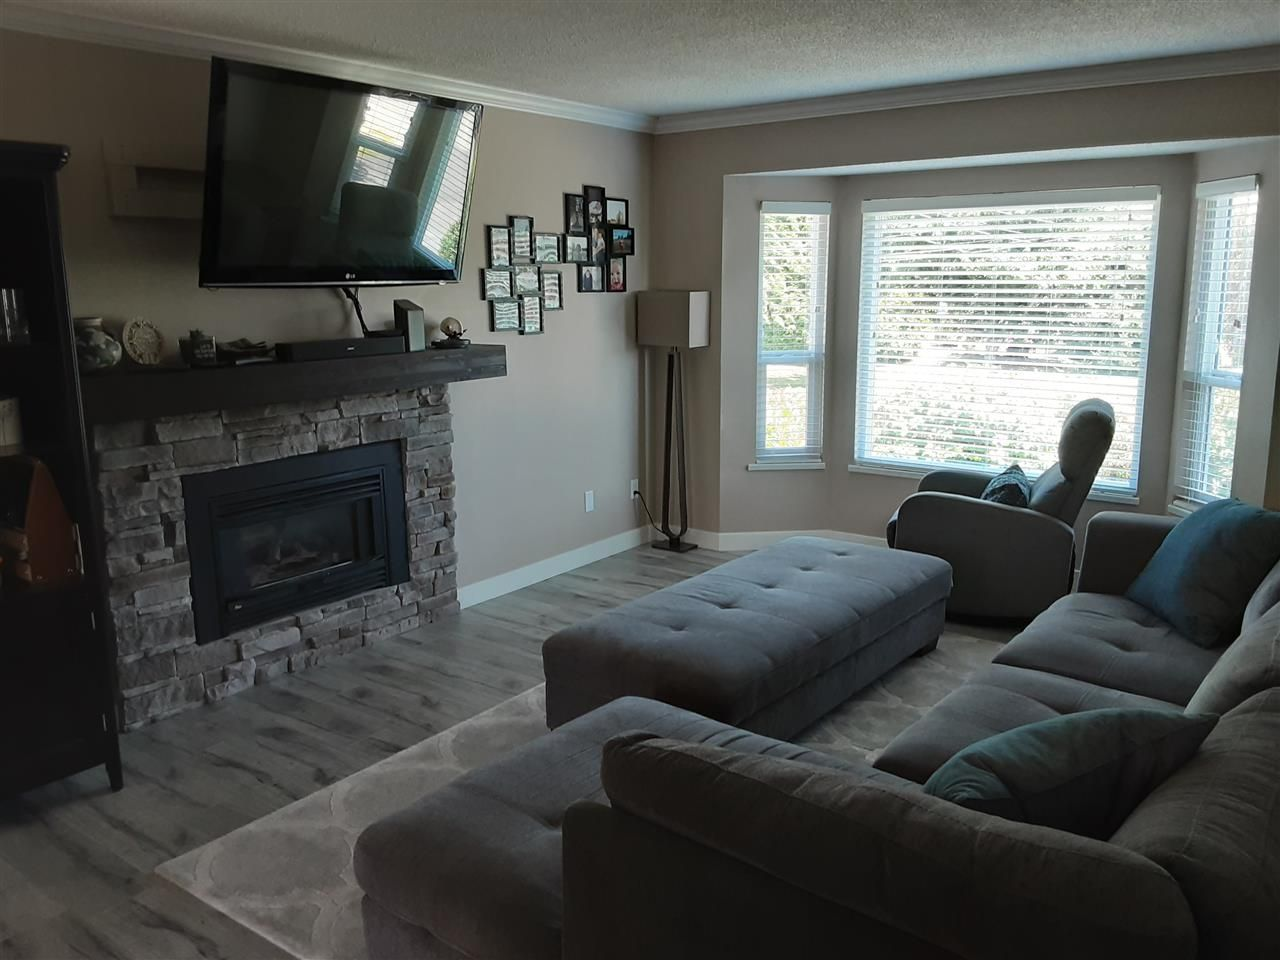 Photo 15: Photos: 3287 274 Street in Langley: Aldergrove Langley House for sale : MLS®# R2484329